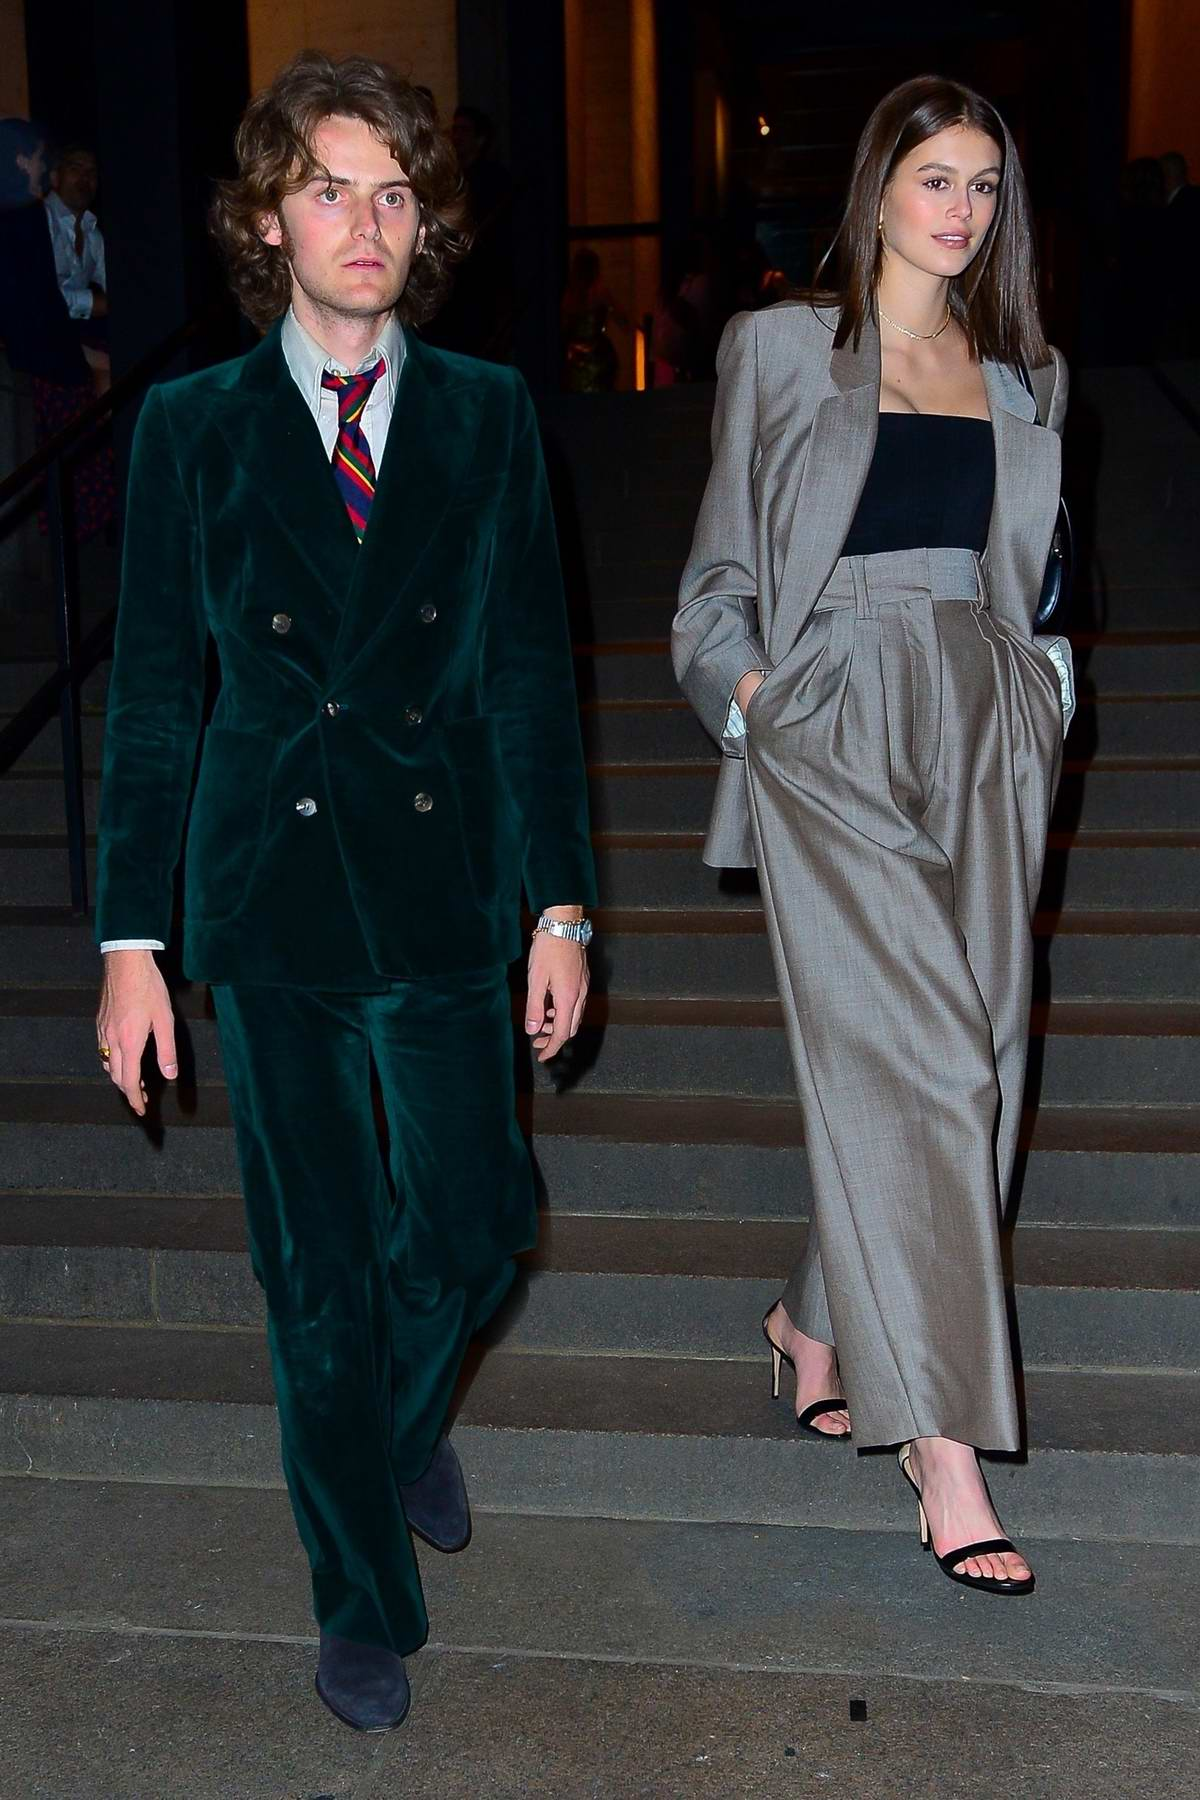 Kaia Gerber looks stunning in a Marc Jacob suit as she attends Marc Jacob's Wedding reception in New York City